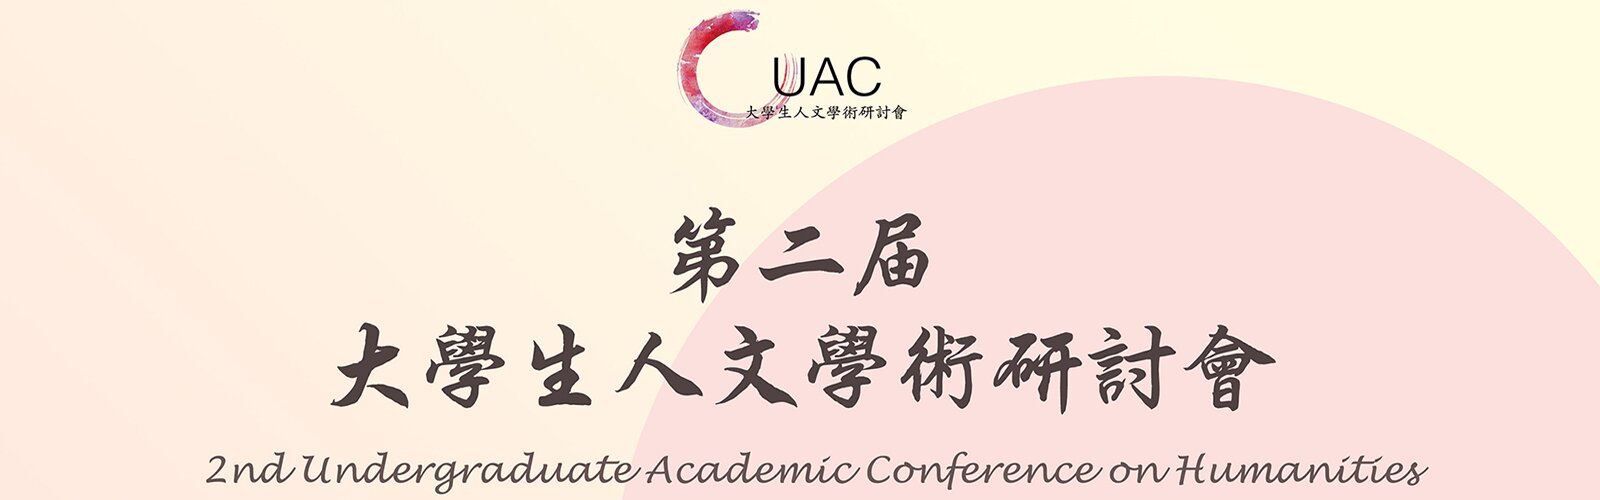 The 2nd Undergraduate Academic Conference on Humanities